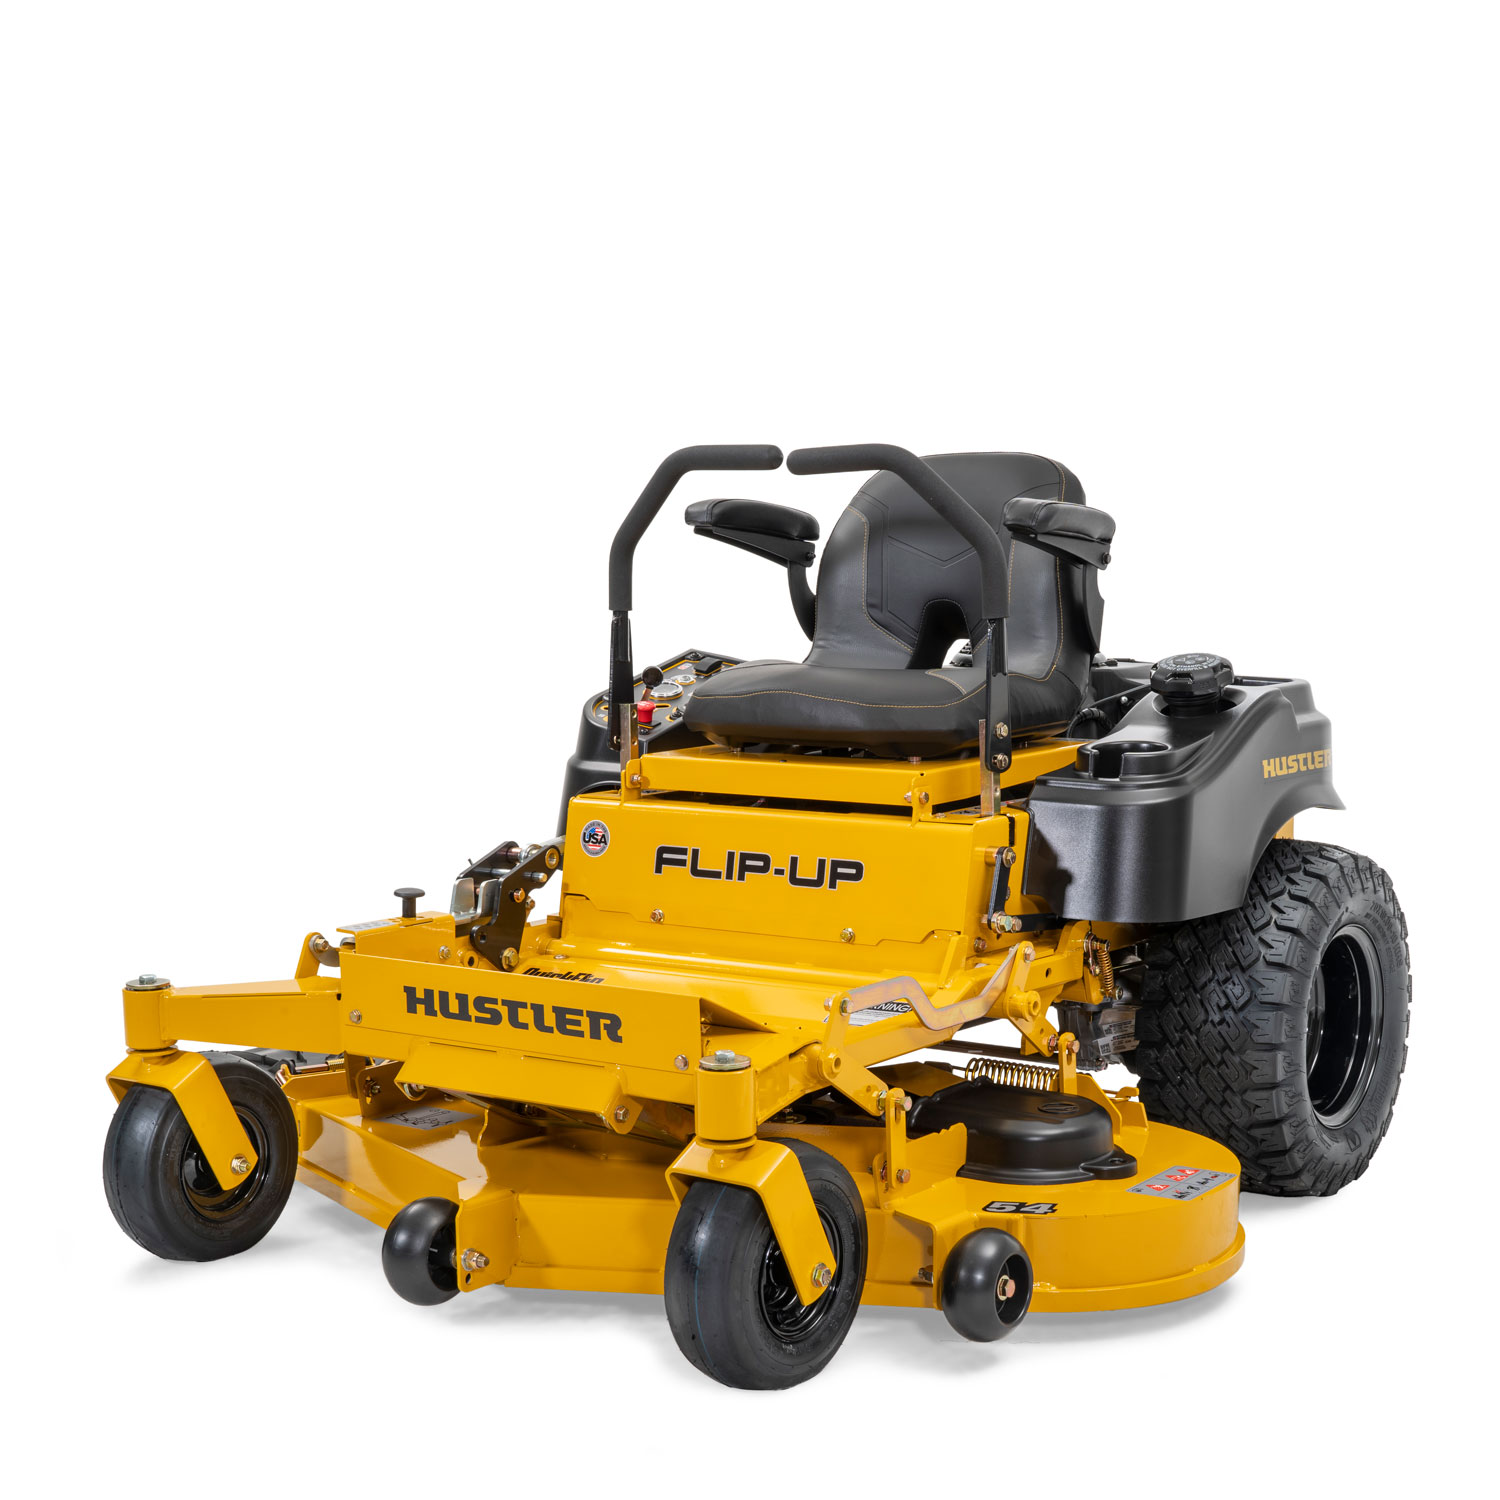 Image of the front three quarters of a yellow riding mower